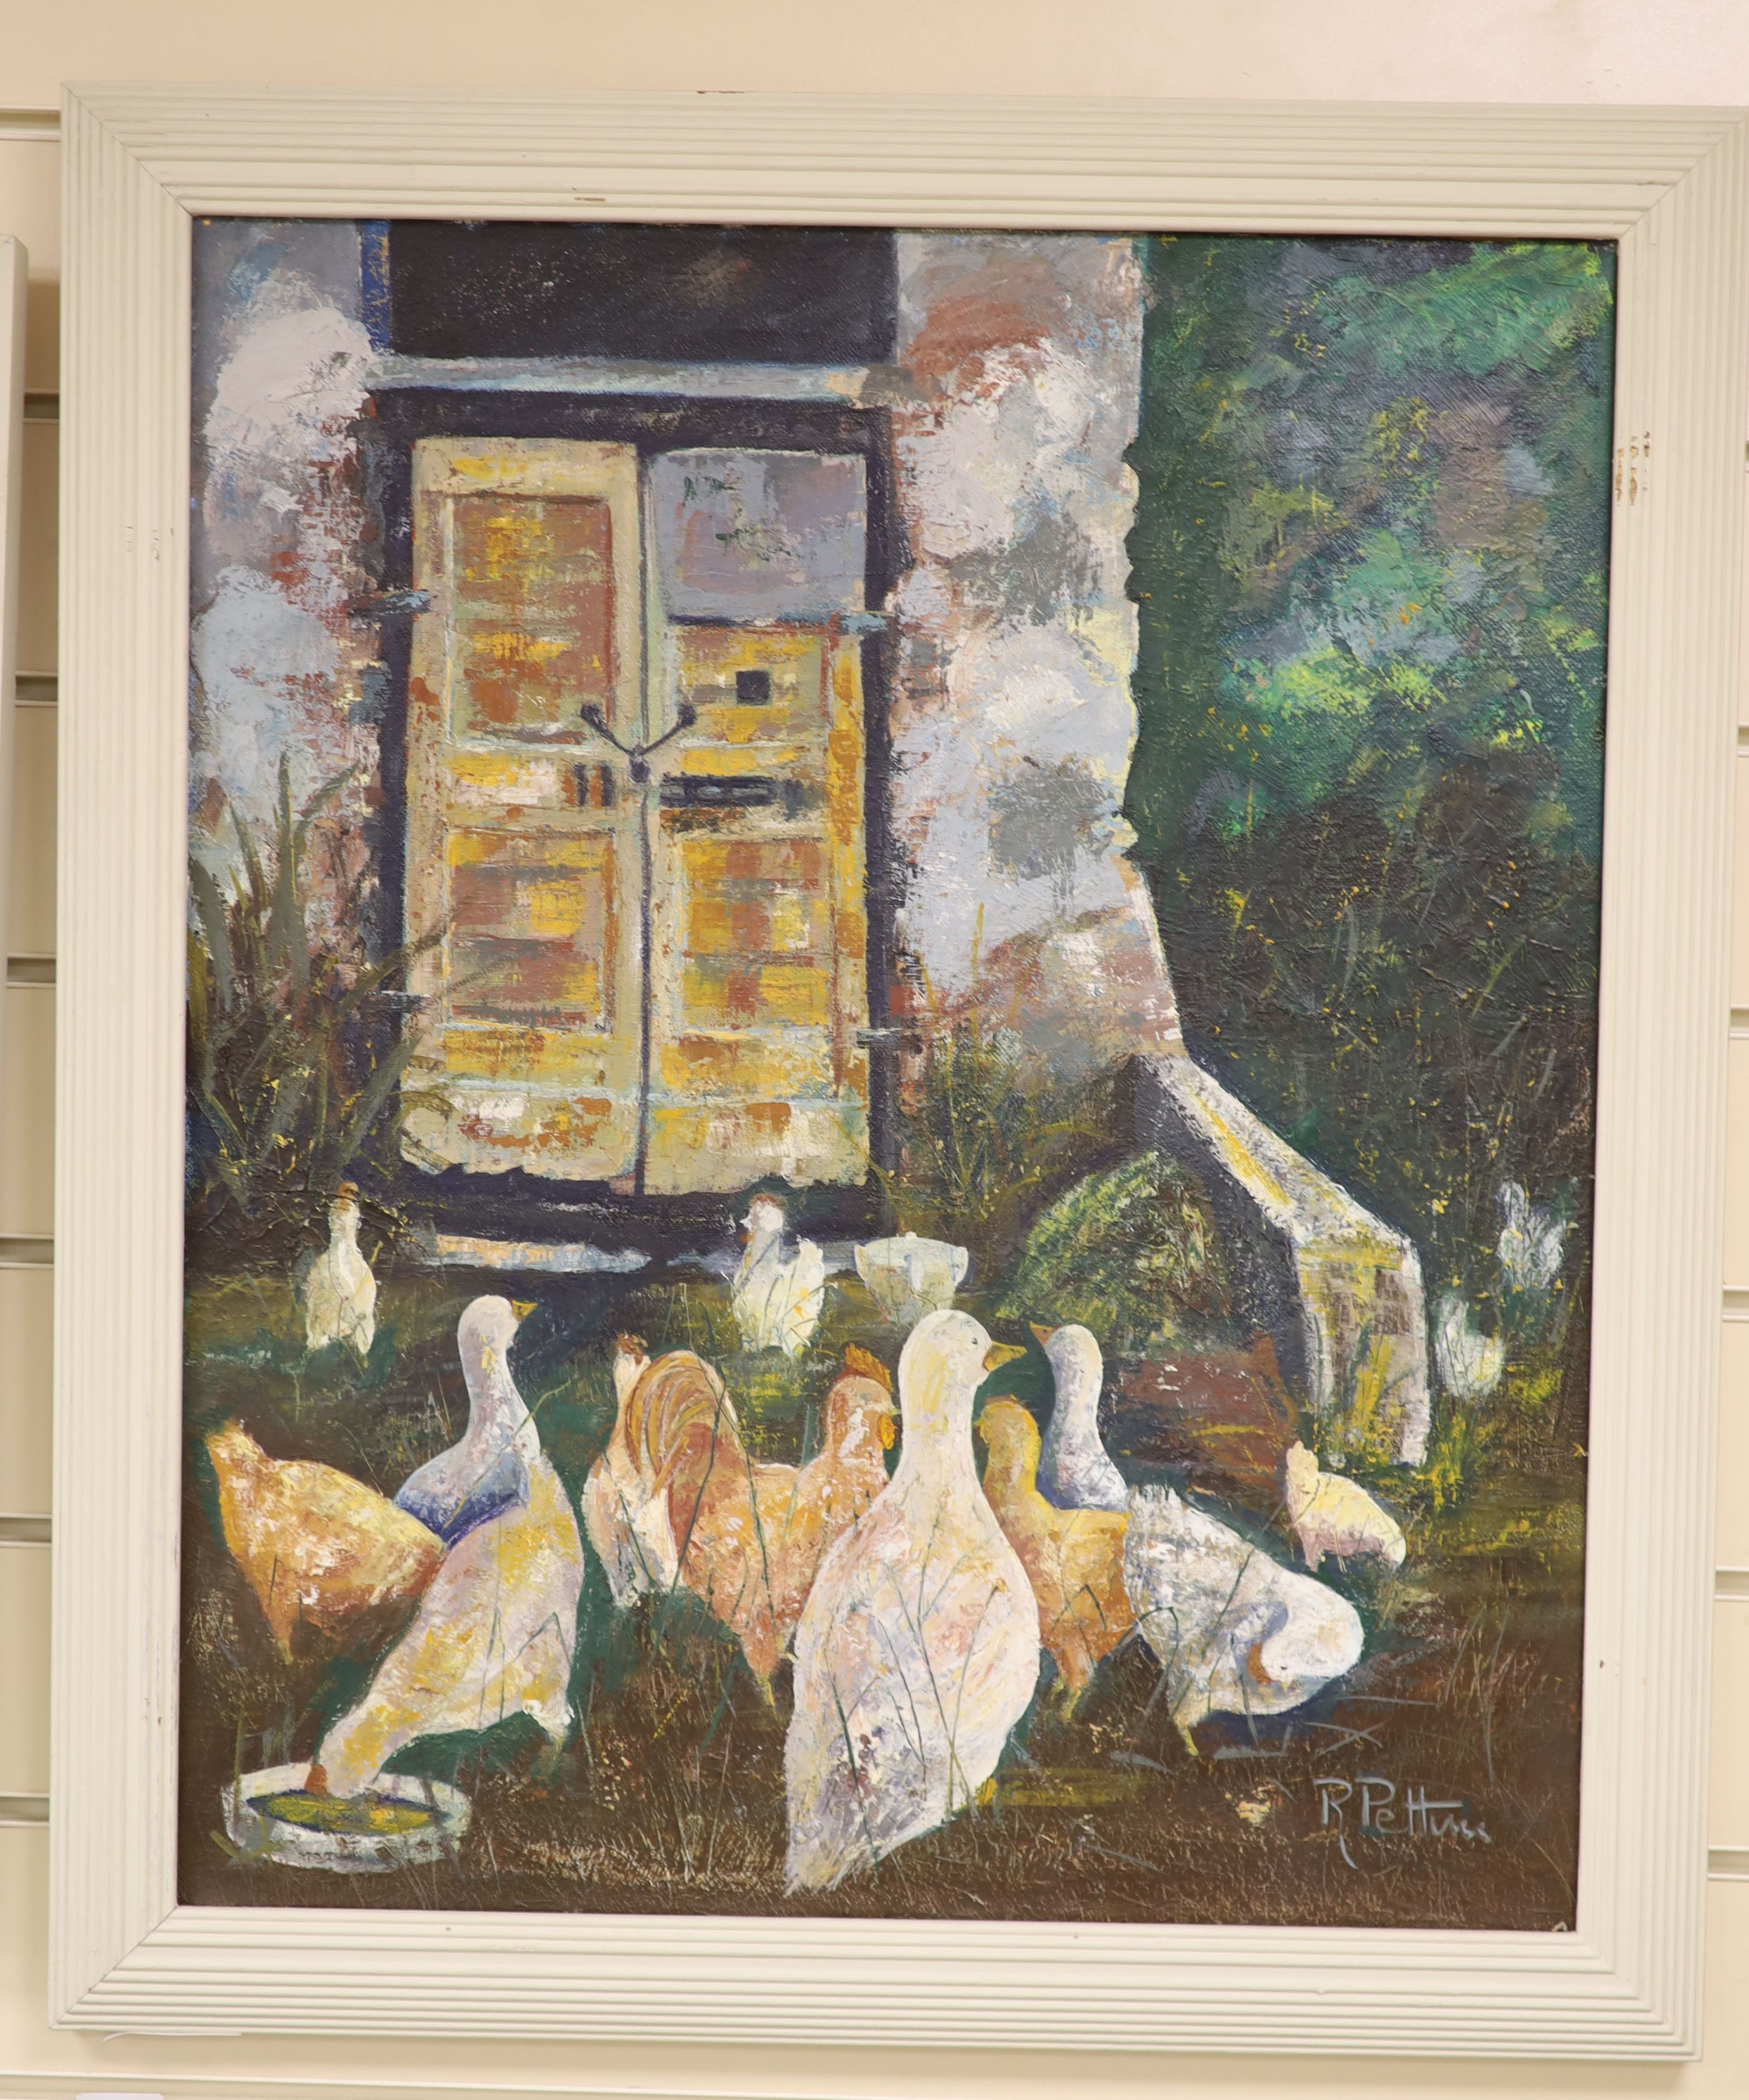 R. Pettini, oil on canvas, Poultry beside a church door, signed, 59 x 49cm - Image 2 of 3